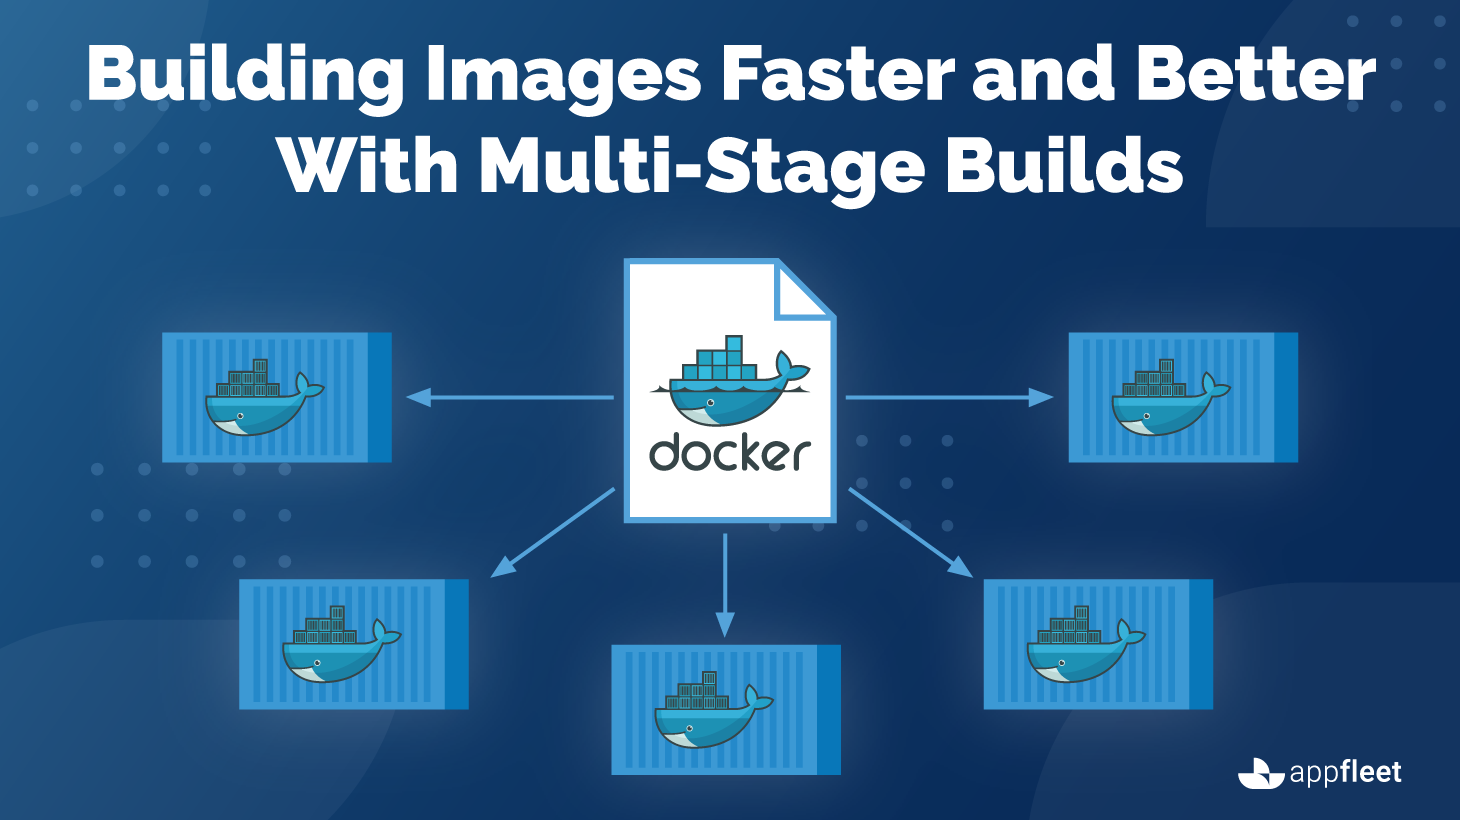 Building Images Faster and Better With Multi-Stage Builds